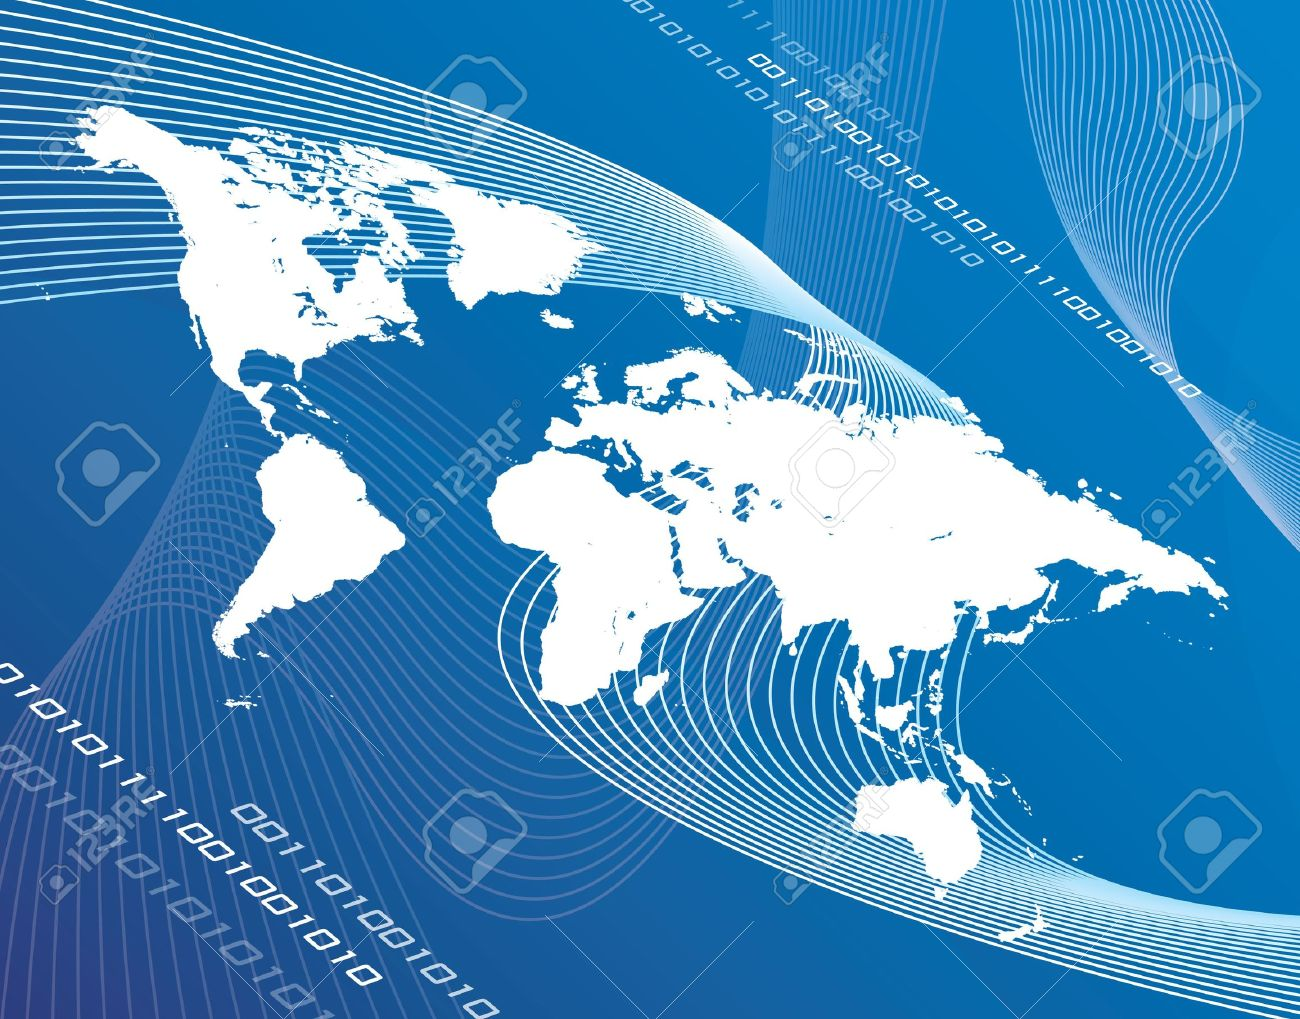 A world map montage over a blue background. Stock Photo - 416047